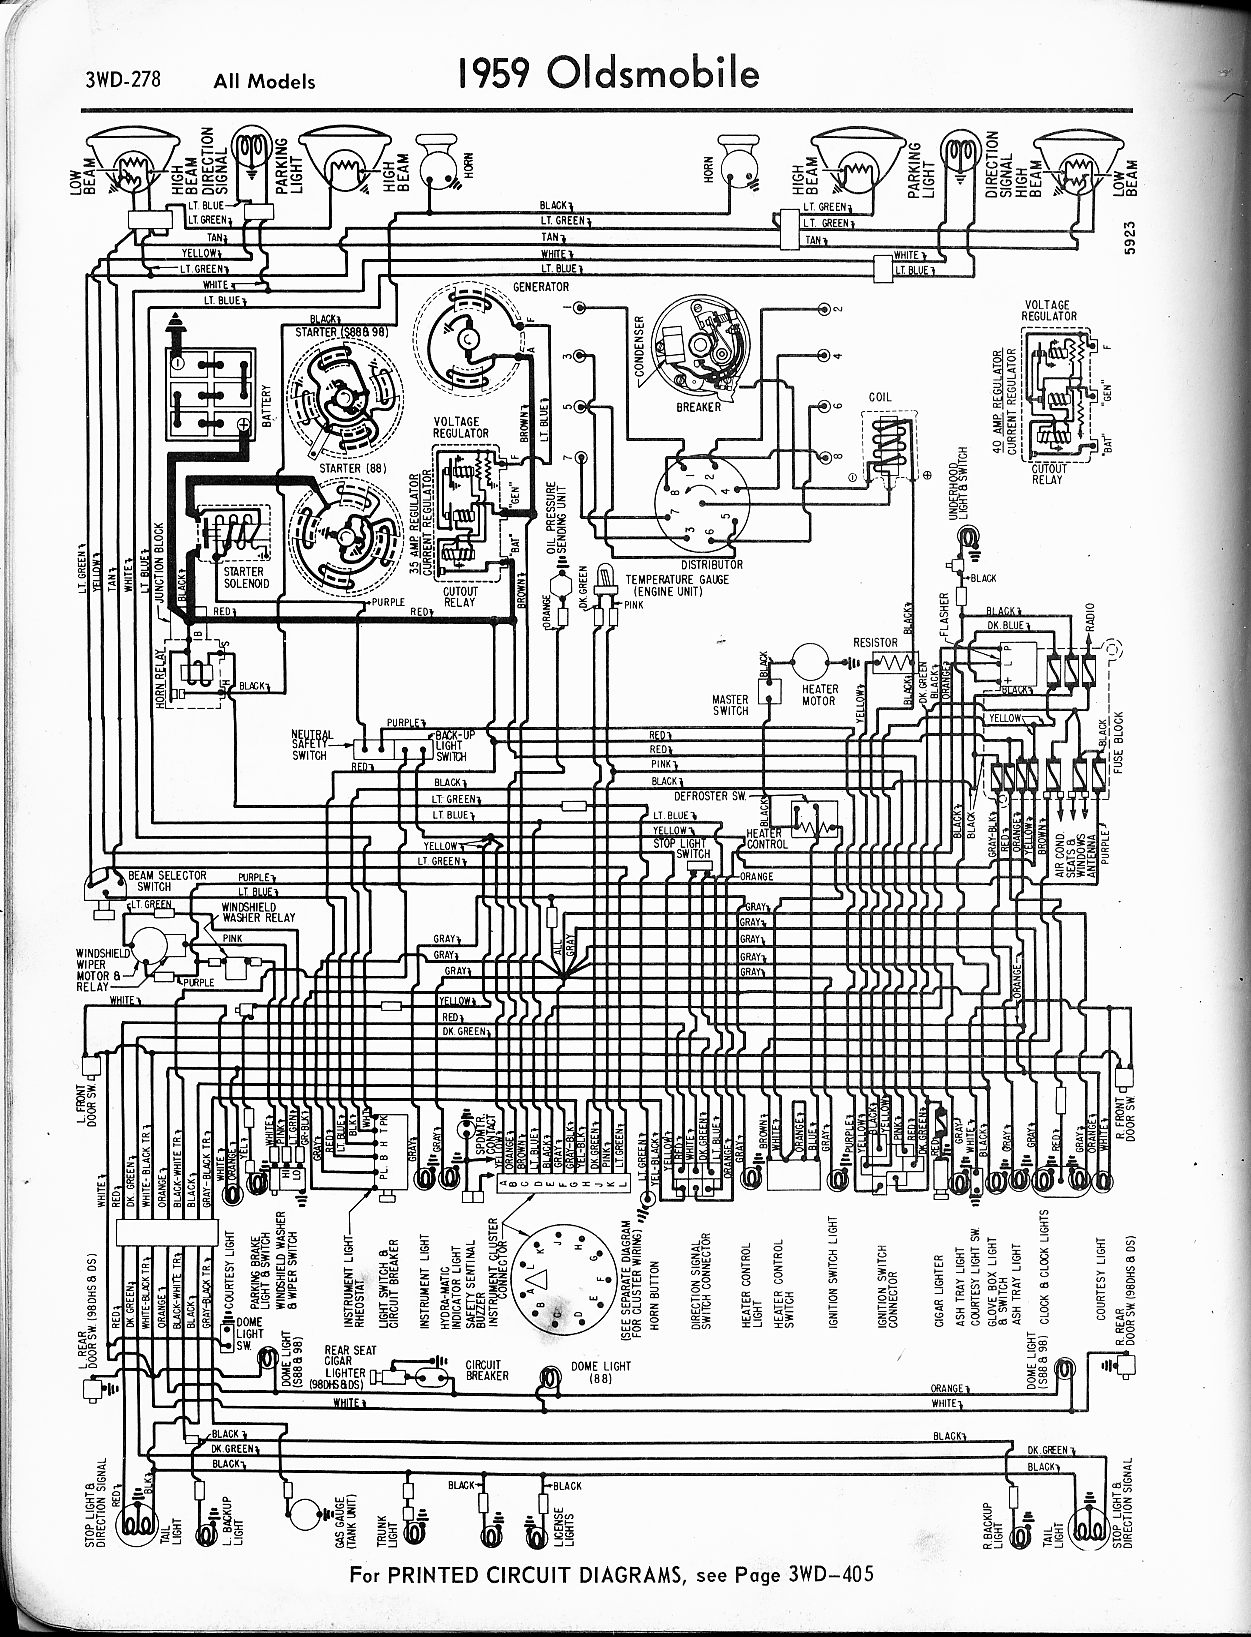 MWire5765 278 oldsmobile wiring diagrams the old car manual project  at soozxer.org